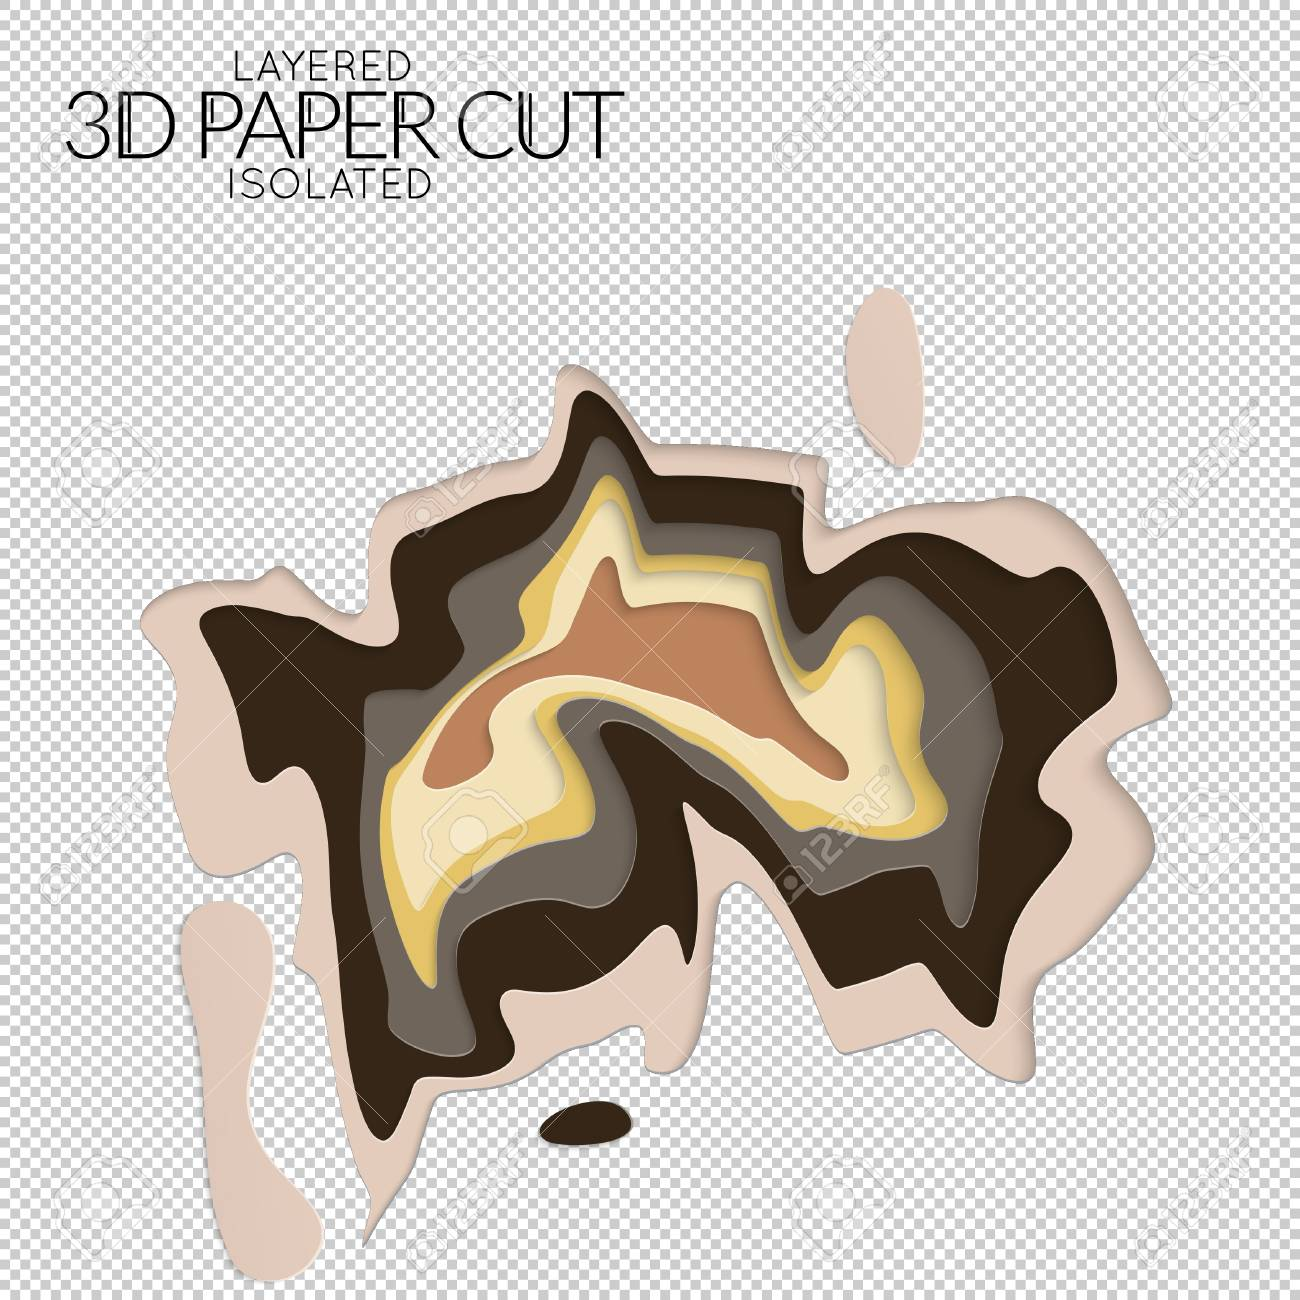 abstract 3d paper cut art shape vector paper cut layers create